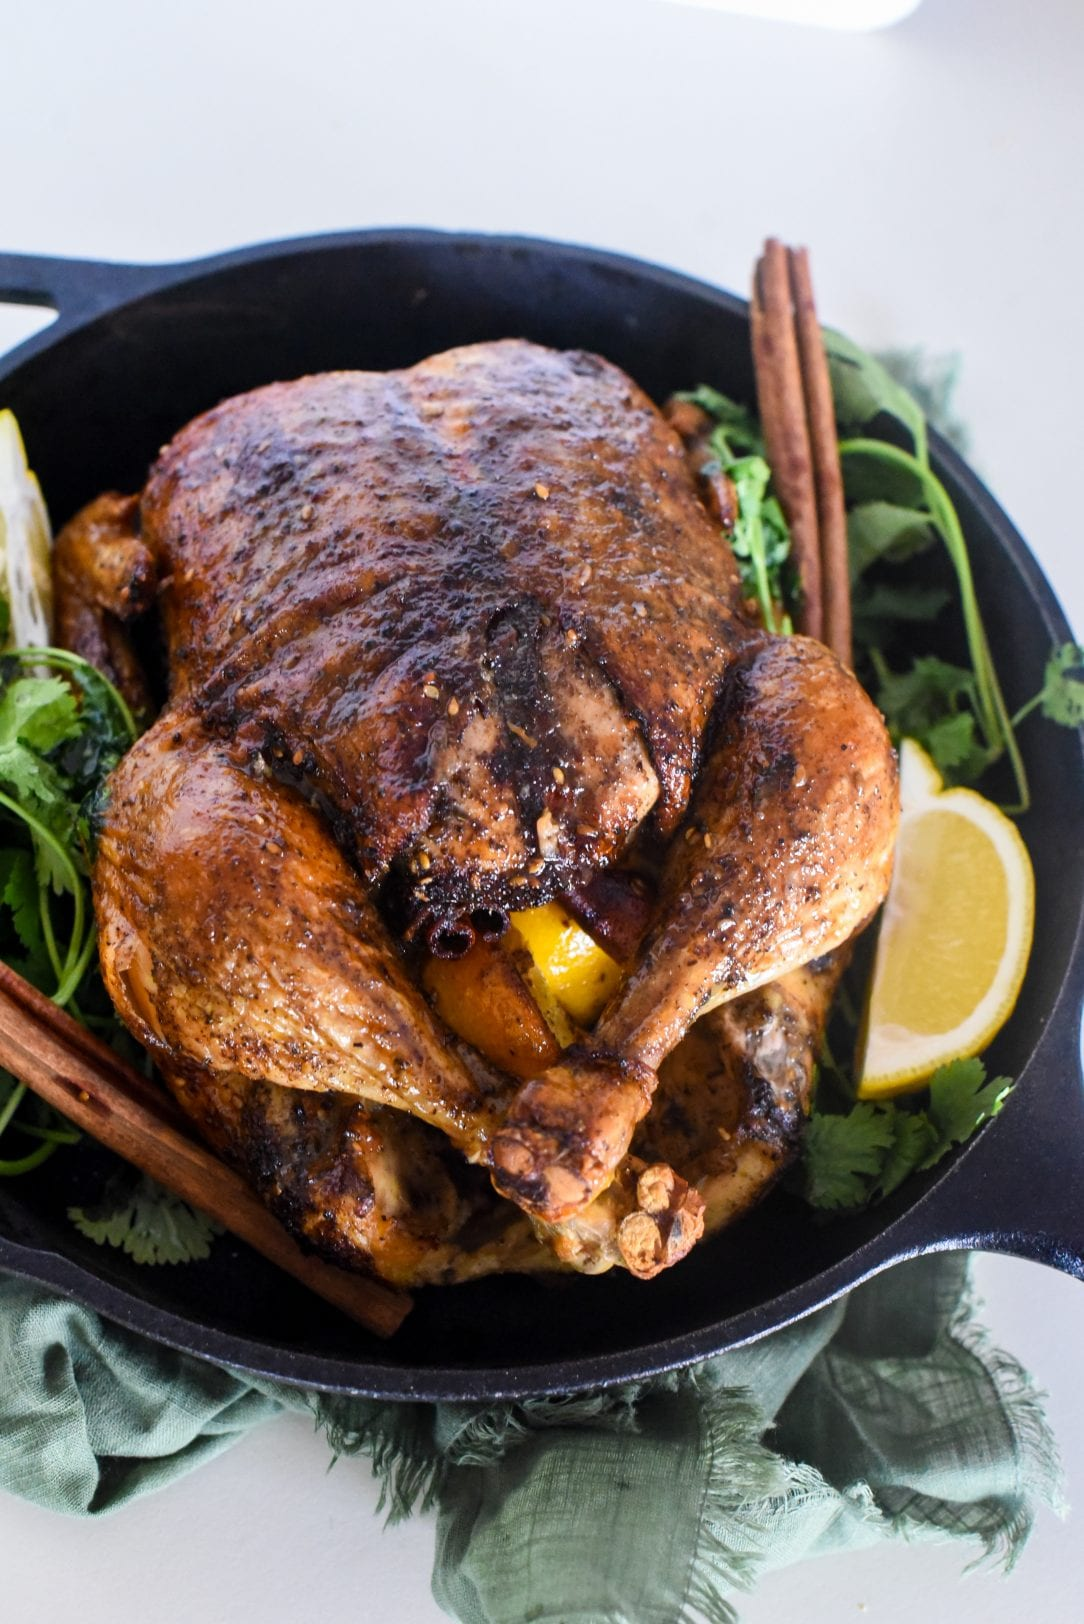 Middle Eastern Slow Roasted Chicken